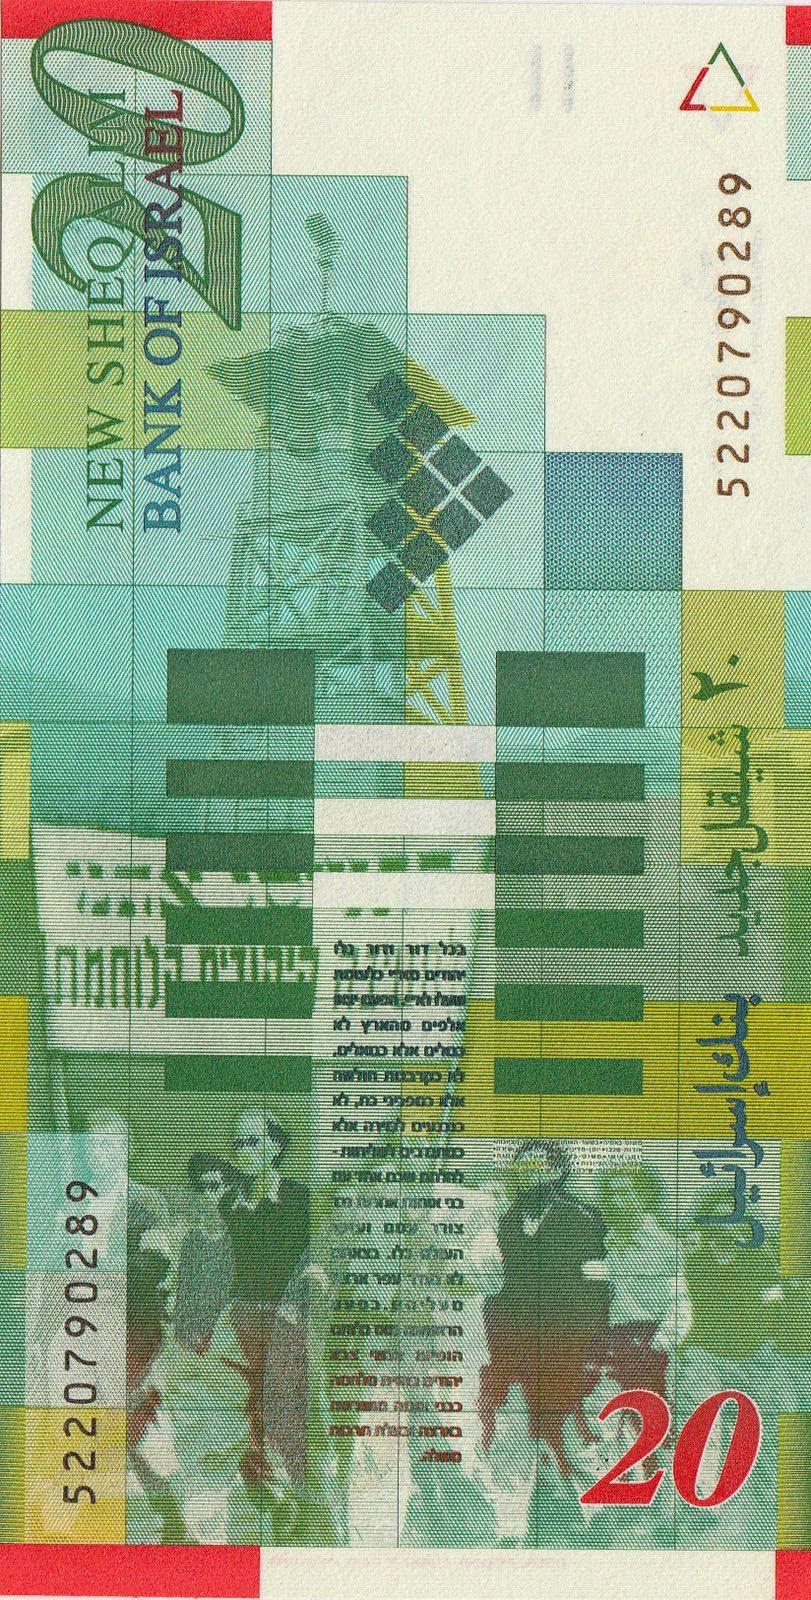 Israeli currency 20 New Sheqalim banknote 1999 Bank of Israel